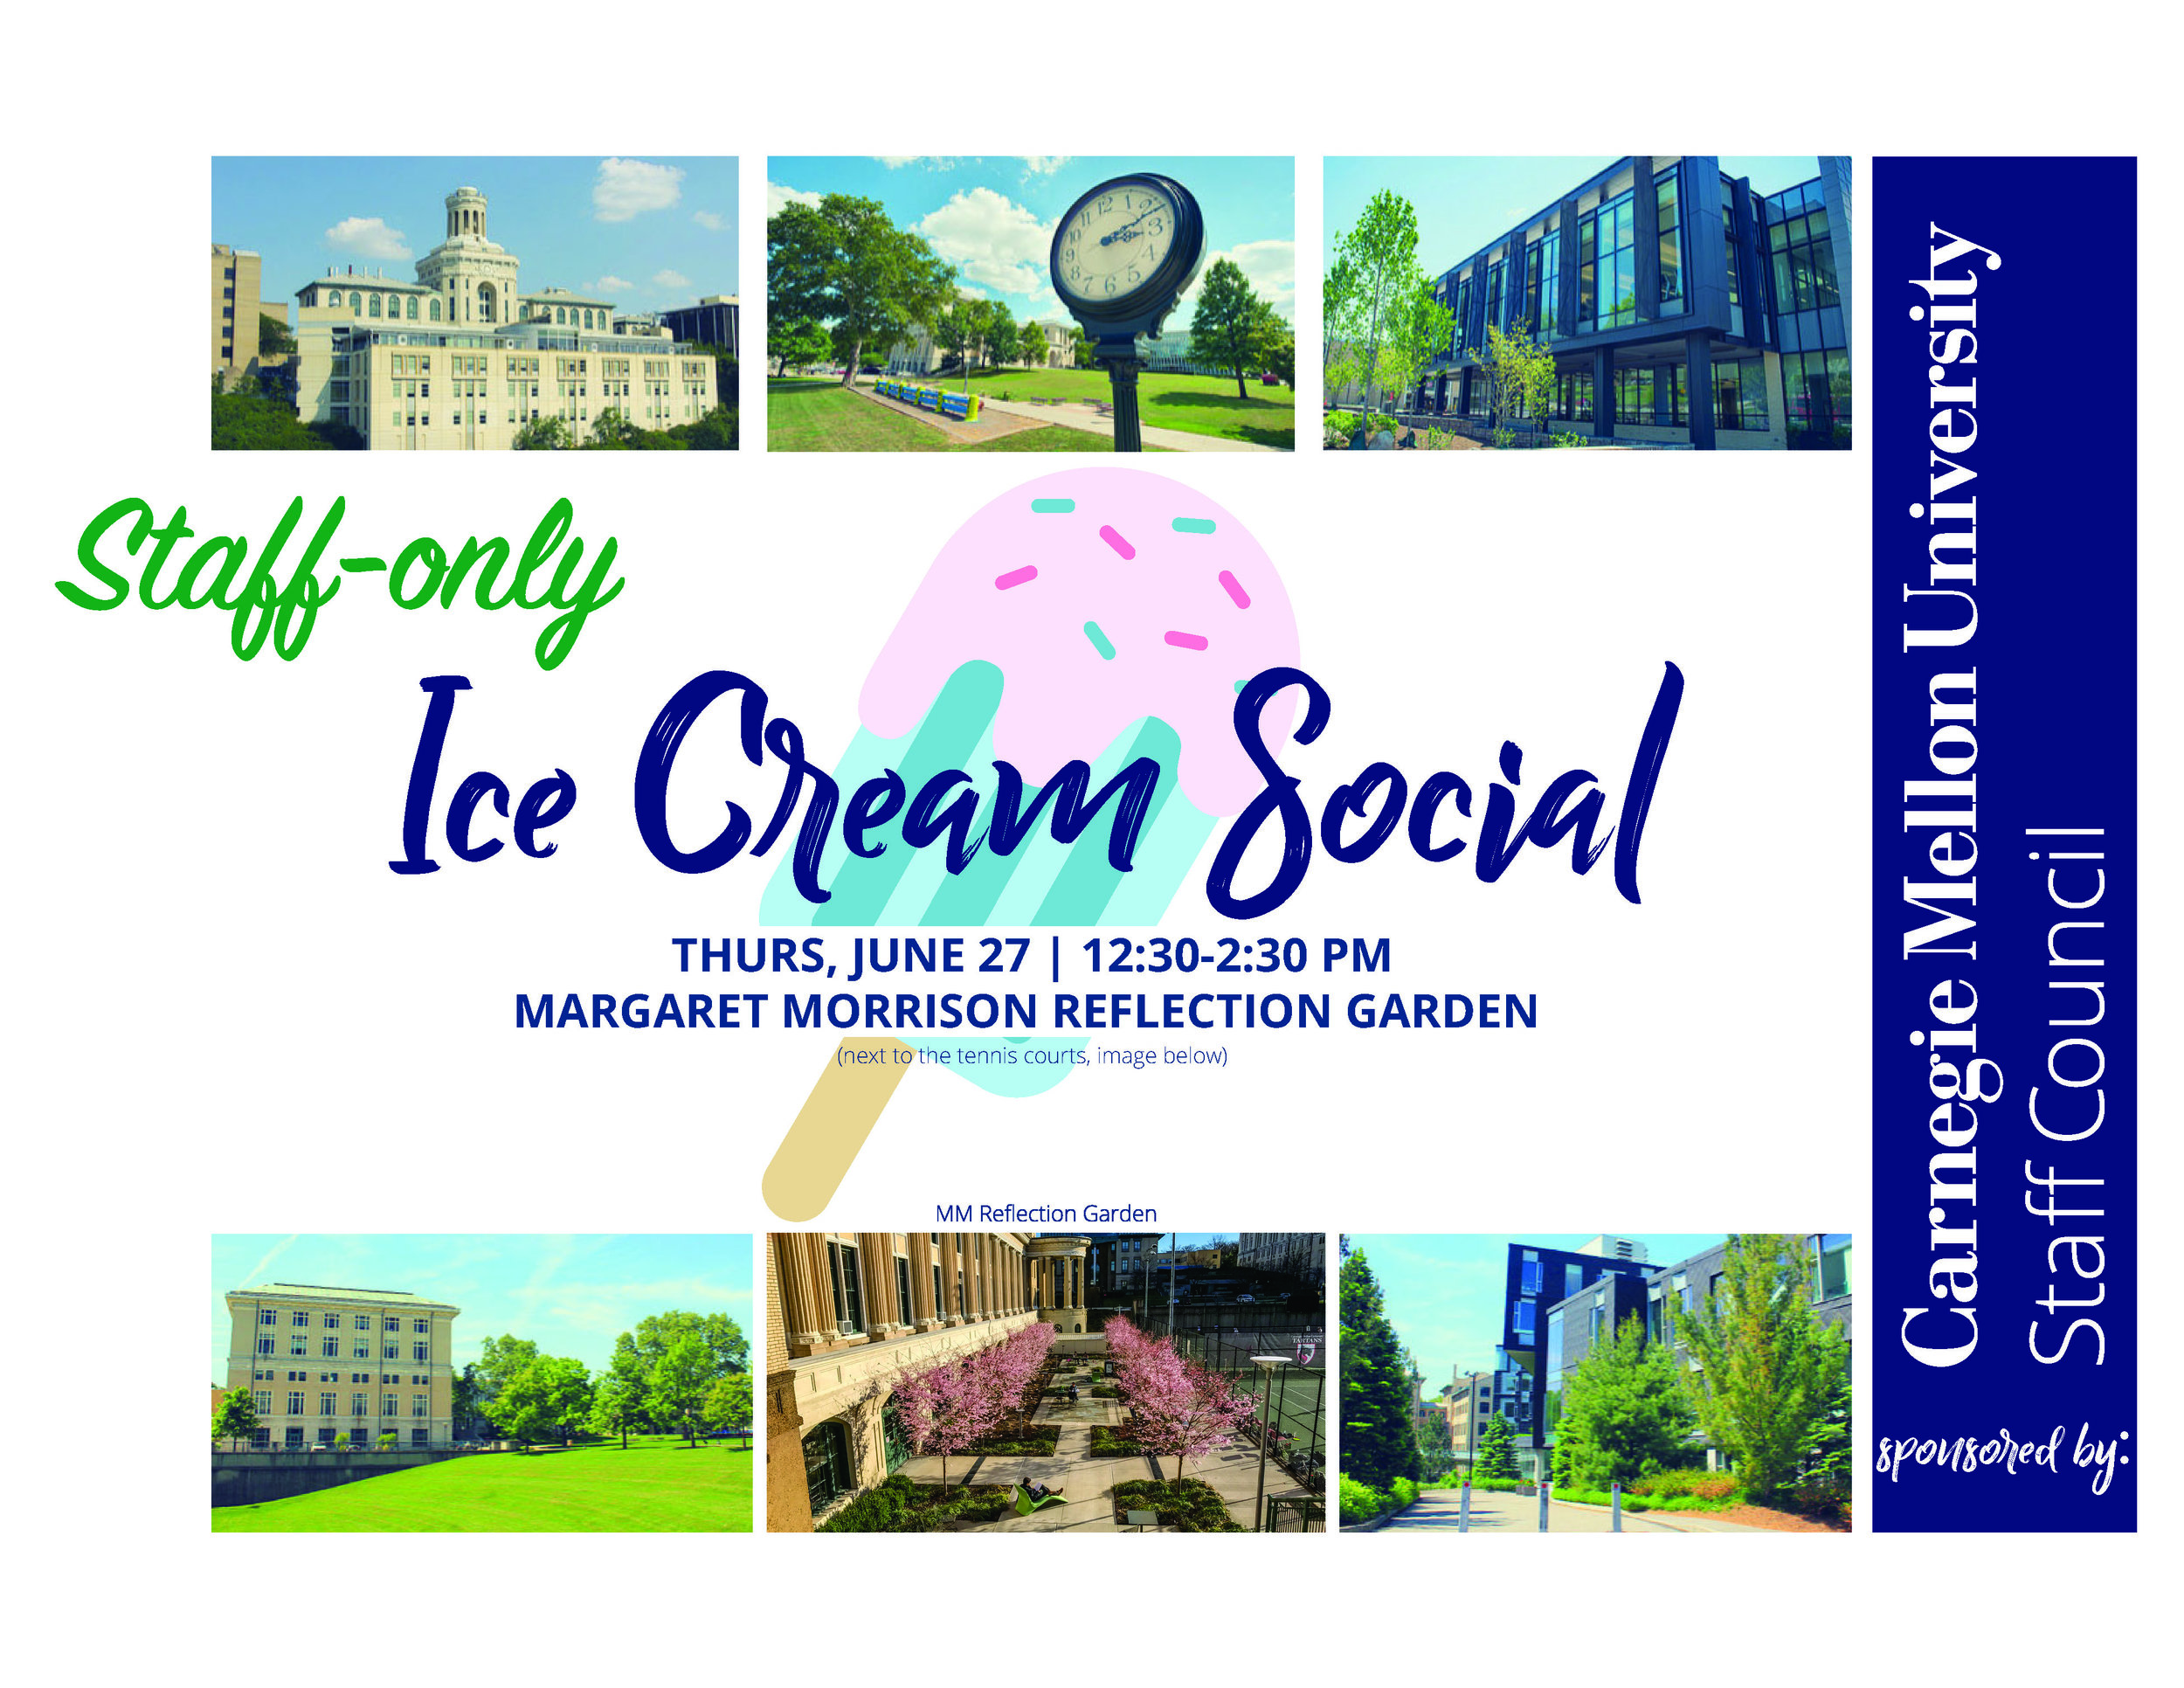 SC Ice Cream Social 2019 Flyer.jpg